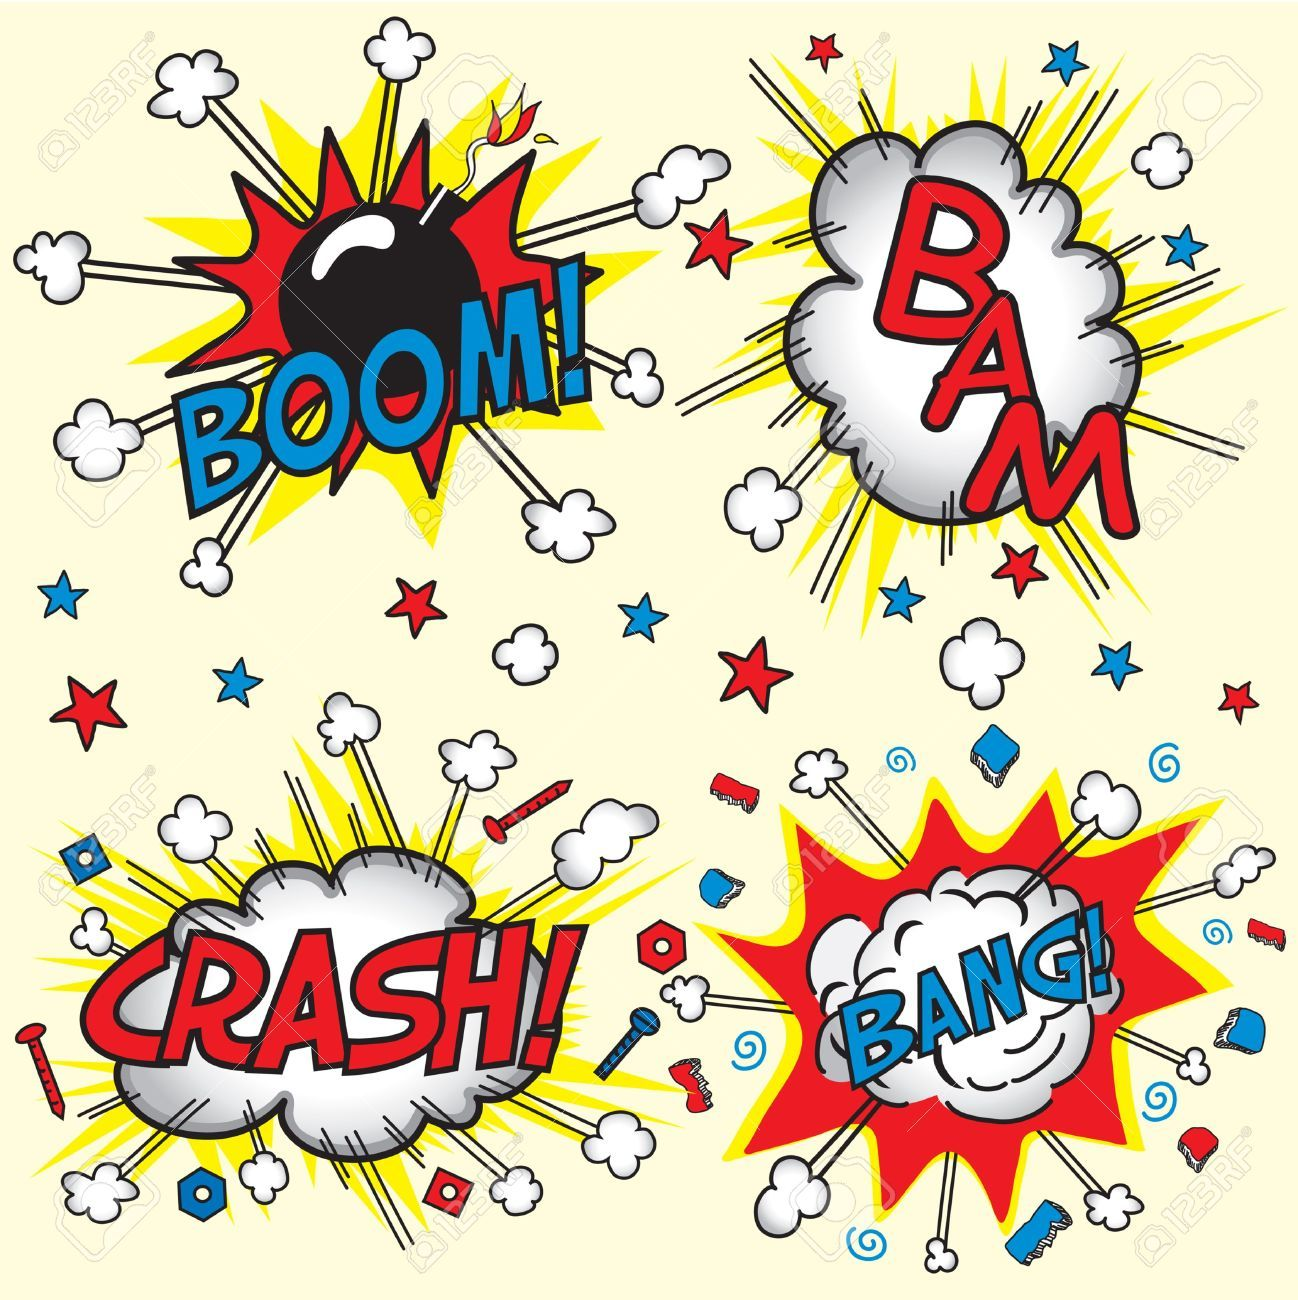 Boom clipart stock. Vector illustration and royalty